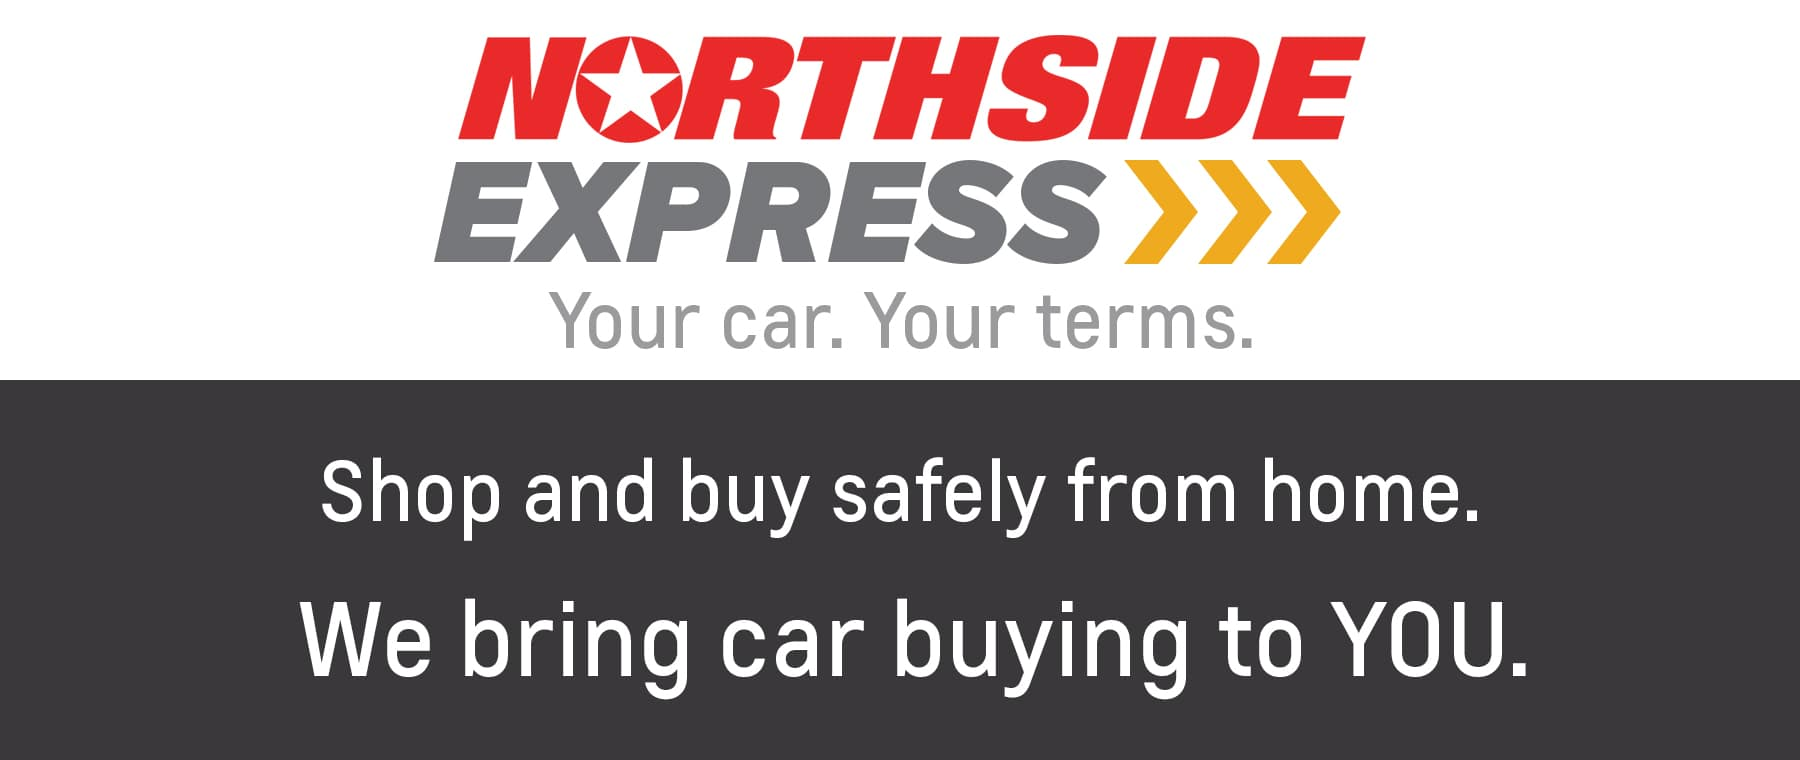 Northside Express Remote Car Buying